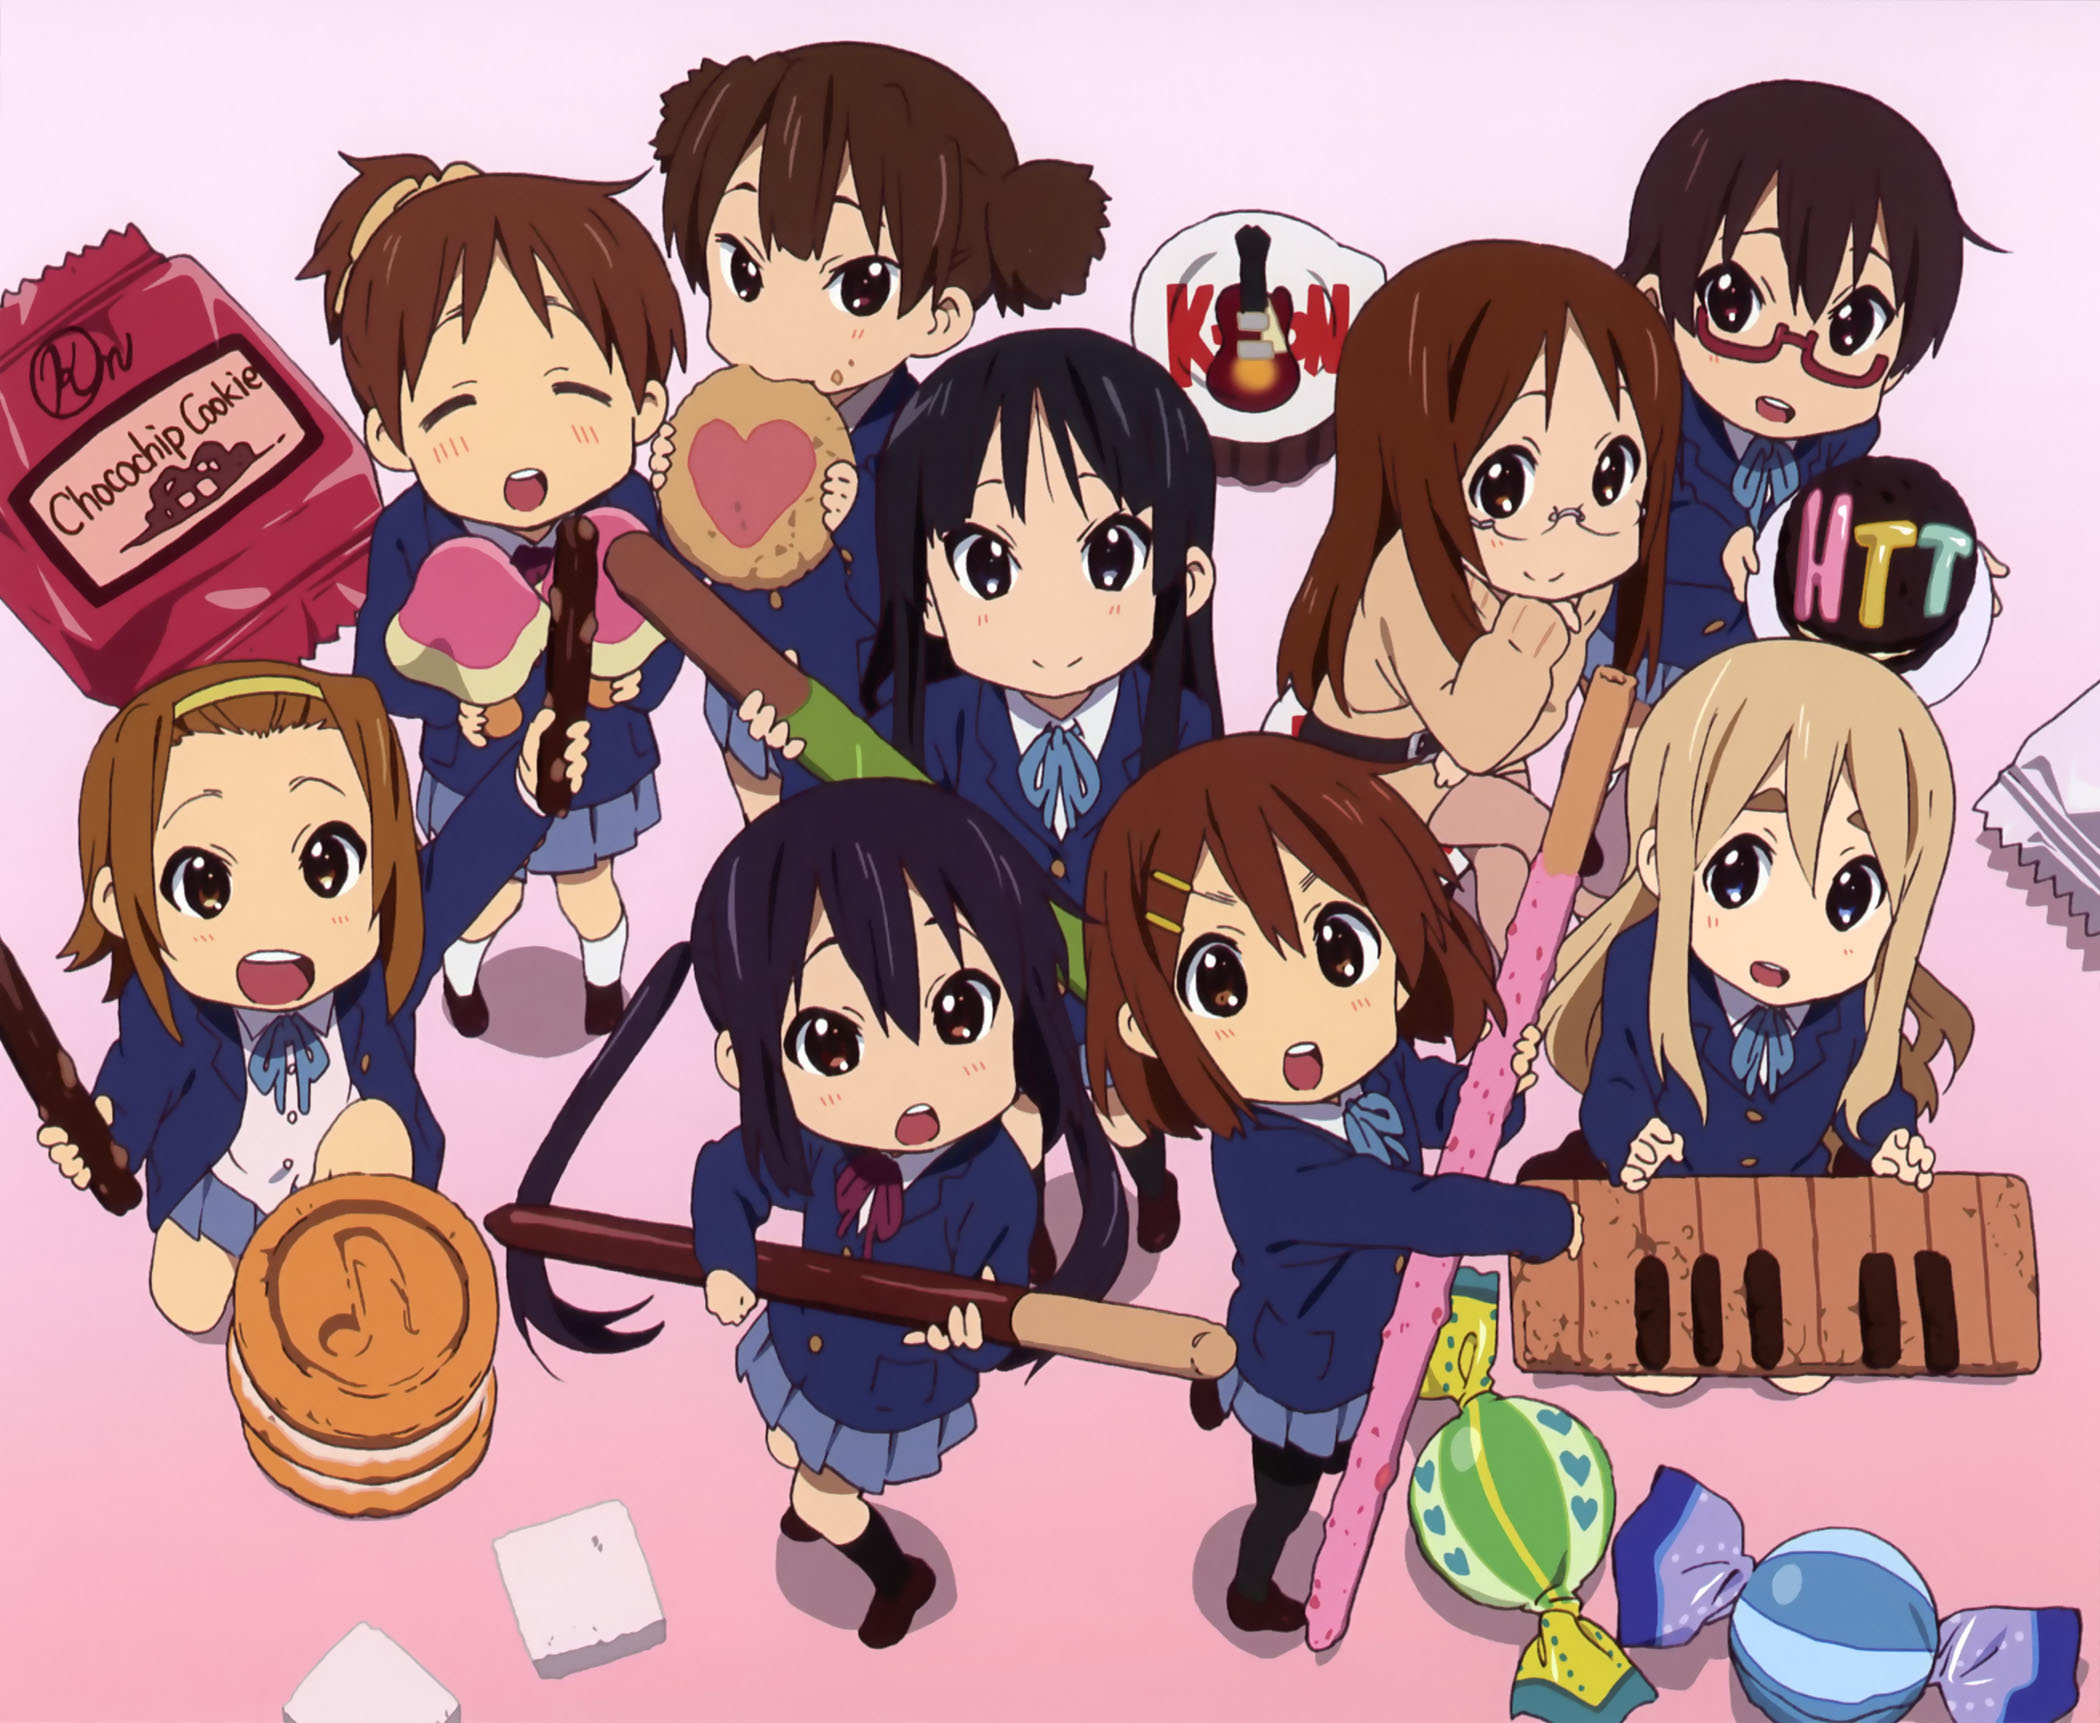 http://www.uplooder.net/img/image/31/66f996b4f2365ca00d9ed15309451a5a/K-ON-Chibi-characters.png